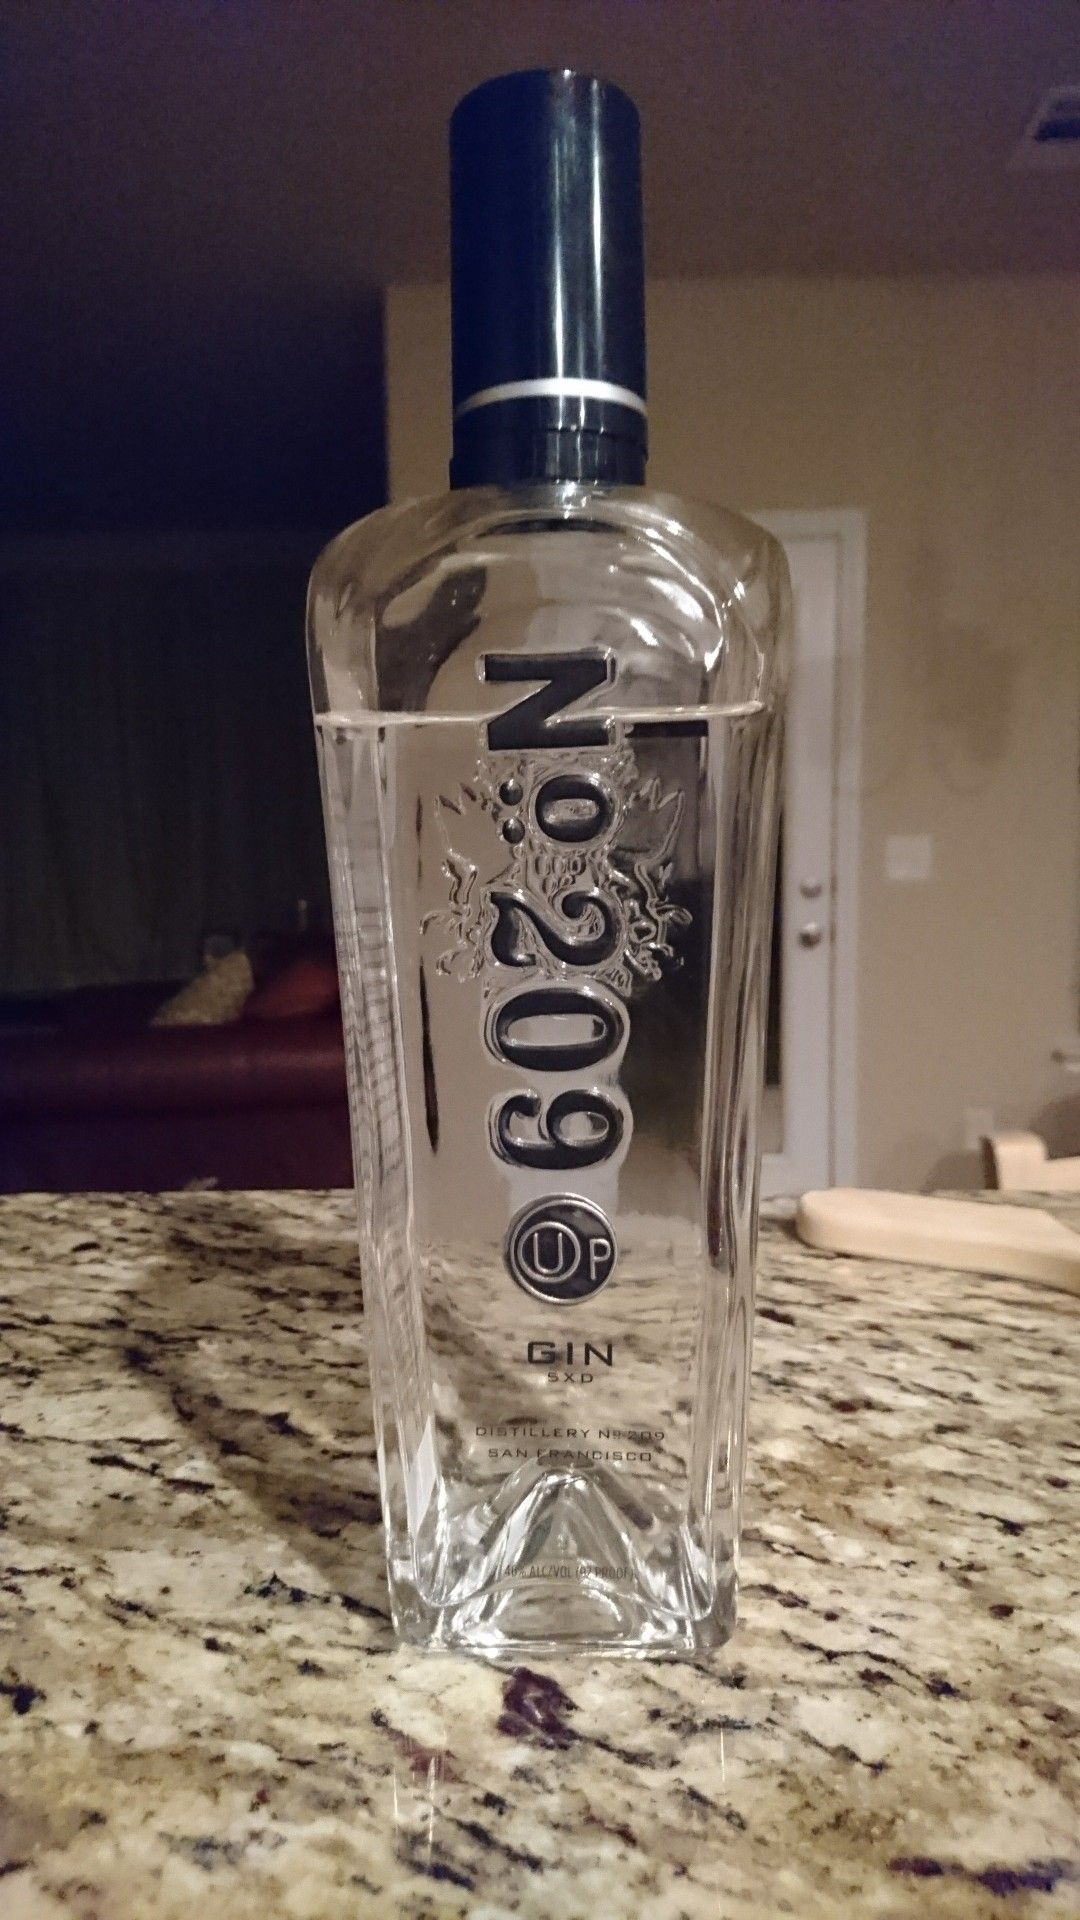 No 209 gin pareve ou p symbol required kosher for passover only 209 gin pareve ou p symbol required kosher for passover only when biocorpaavc